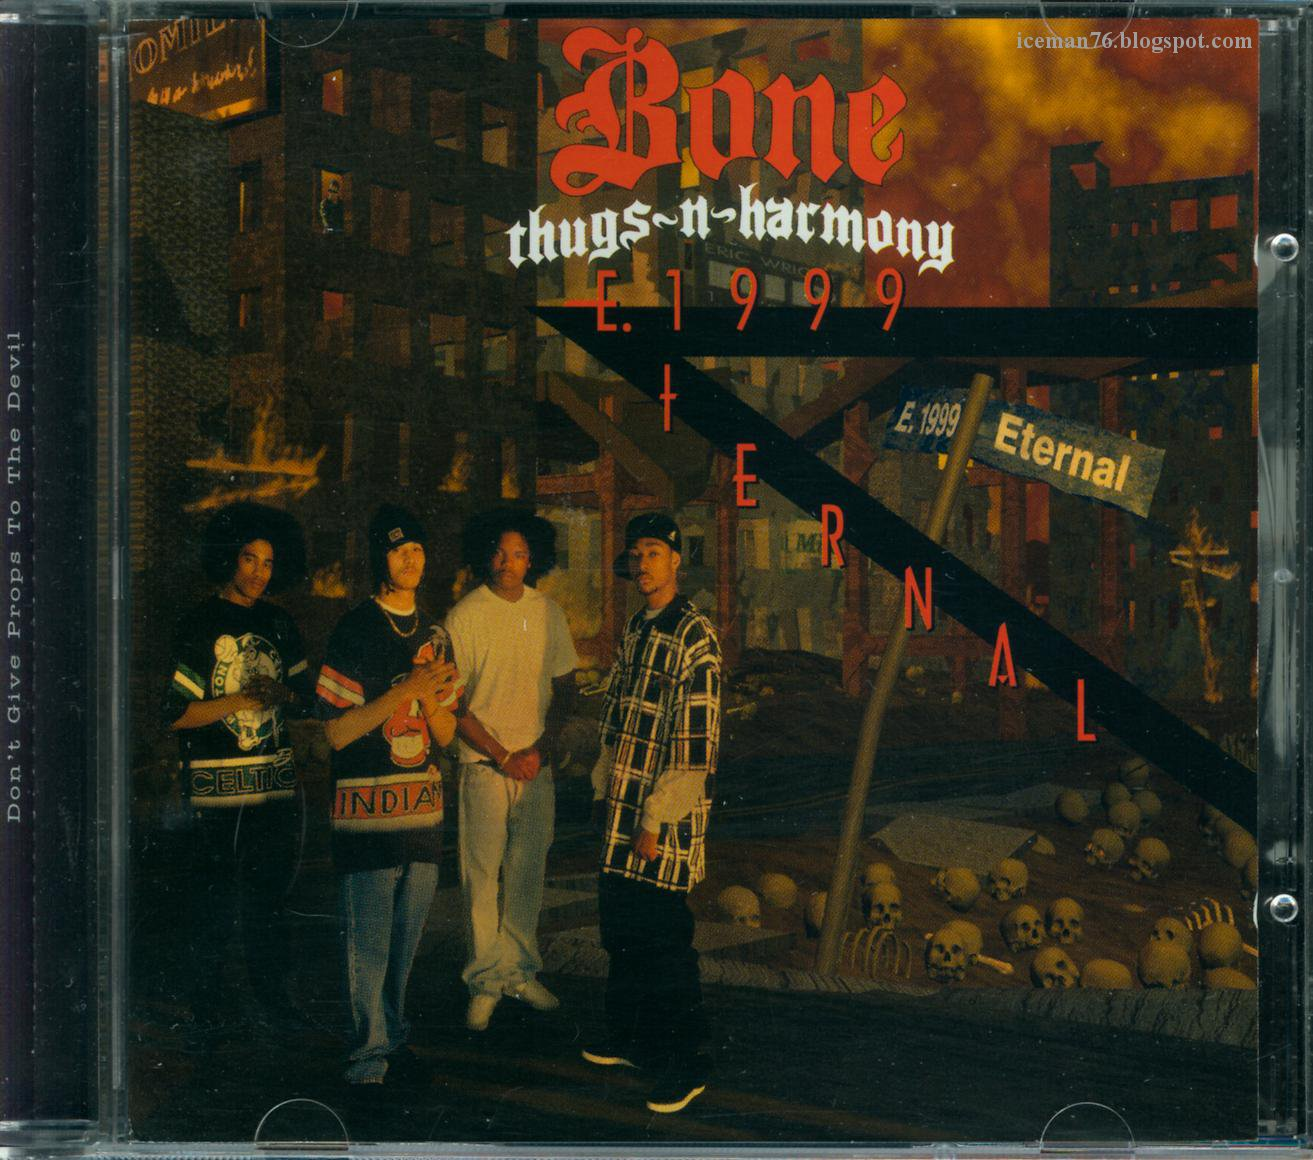 hd wallon Bone Thugs N Harmony Wallpaper 1313x1160